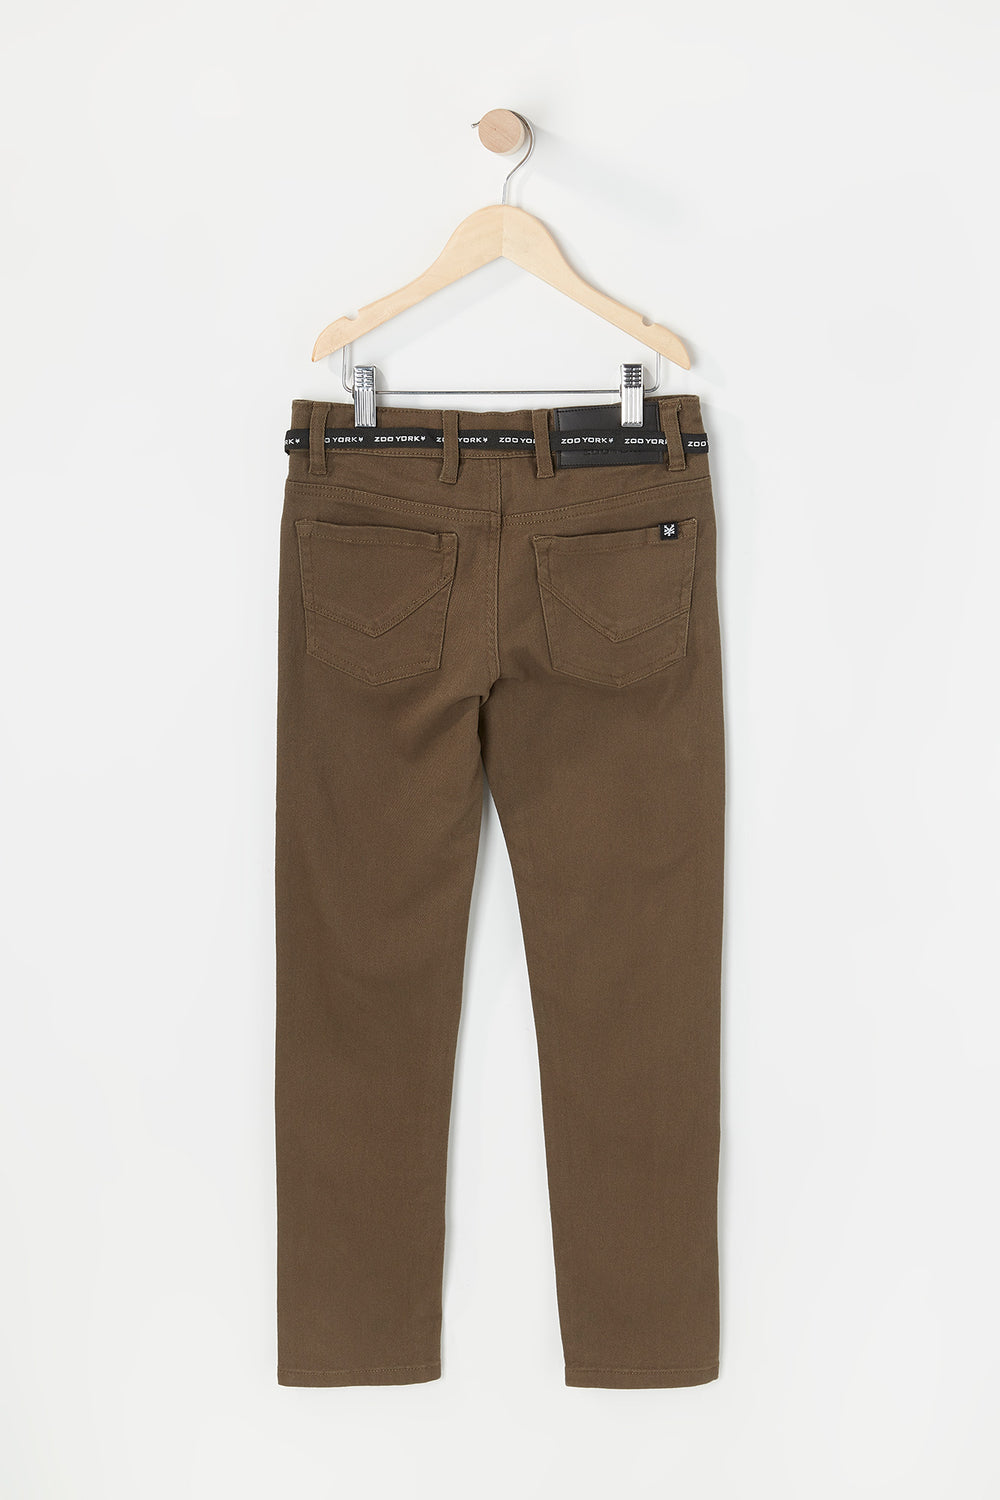 Zoo York Youth Skinny Jeans Khaki